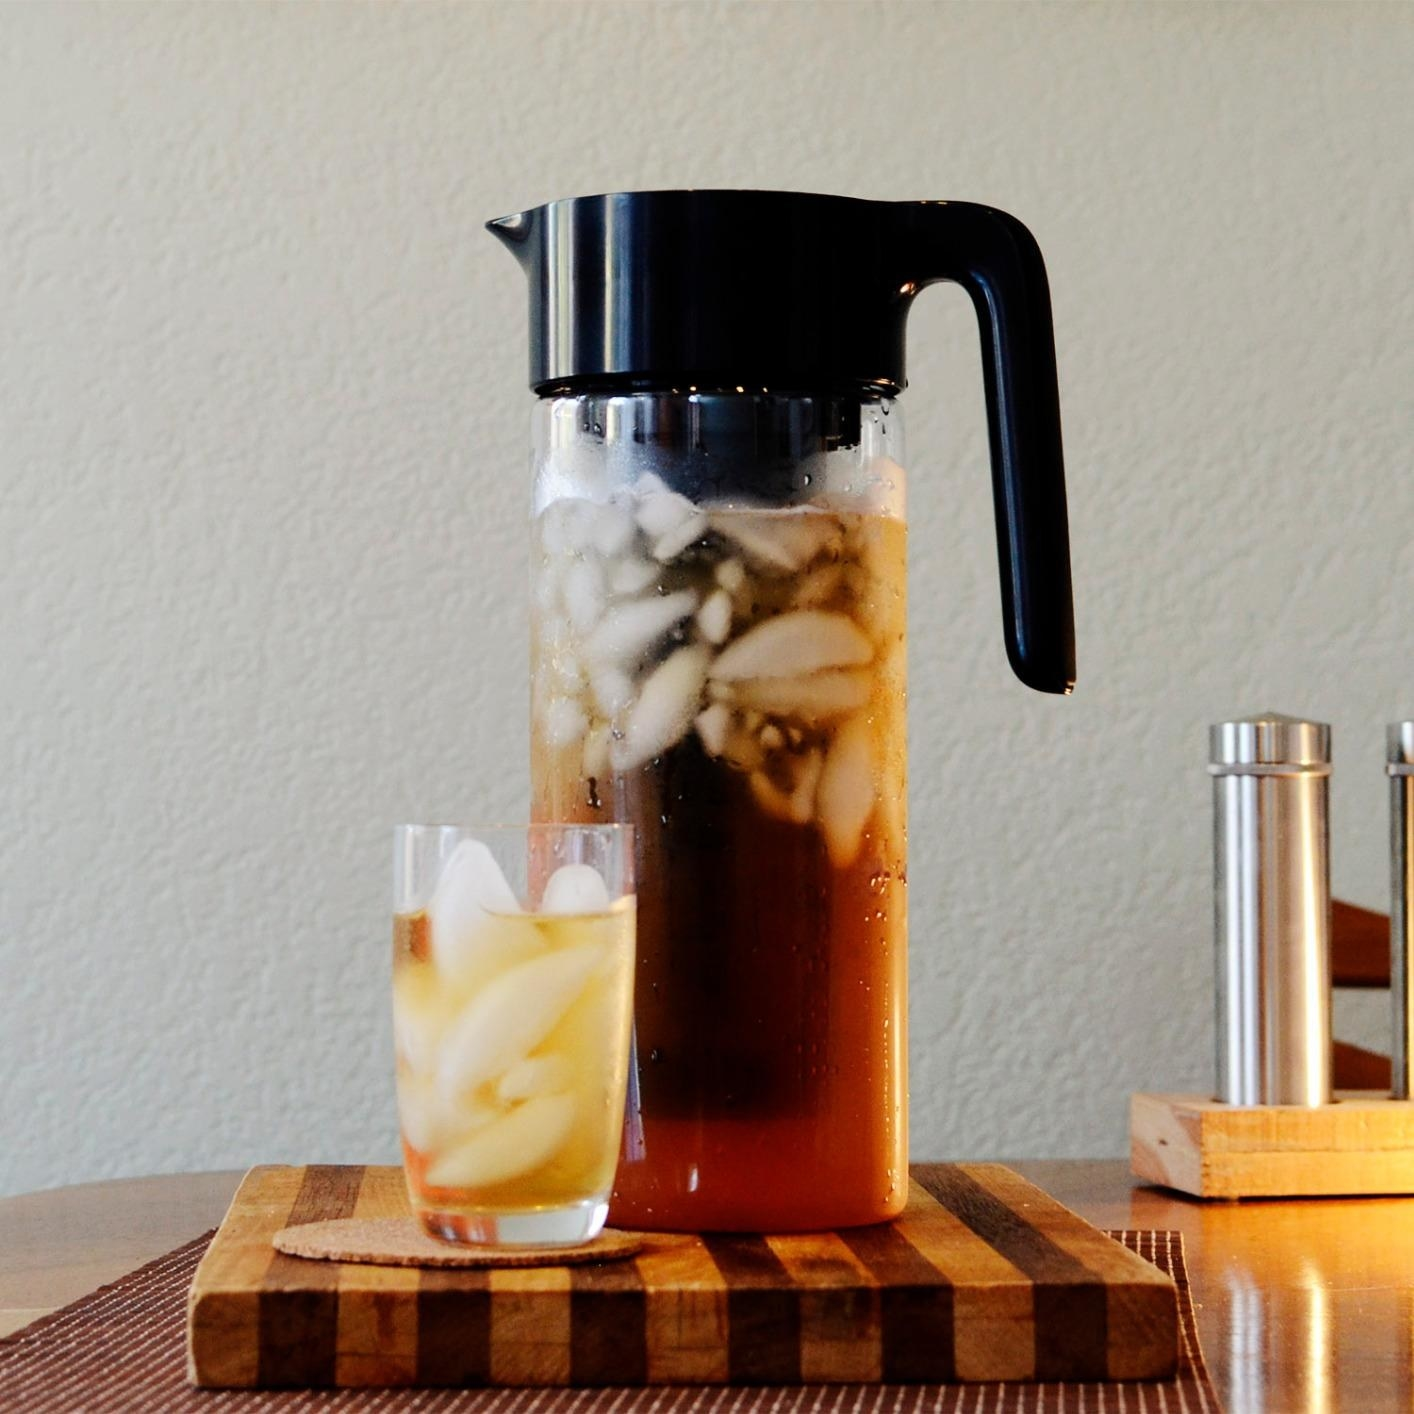 A reviewer image of their goodful cold brew maker filled with iced coffee